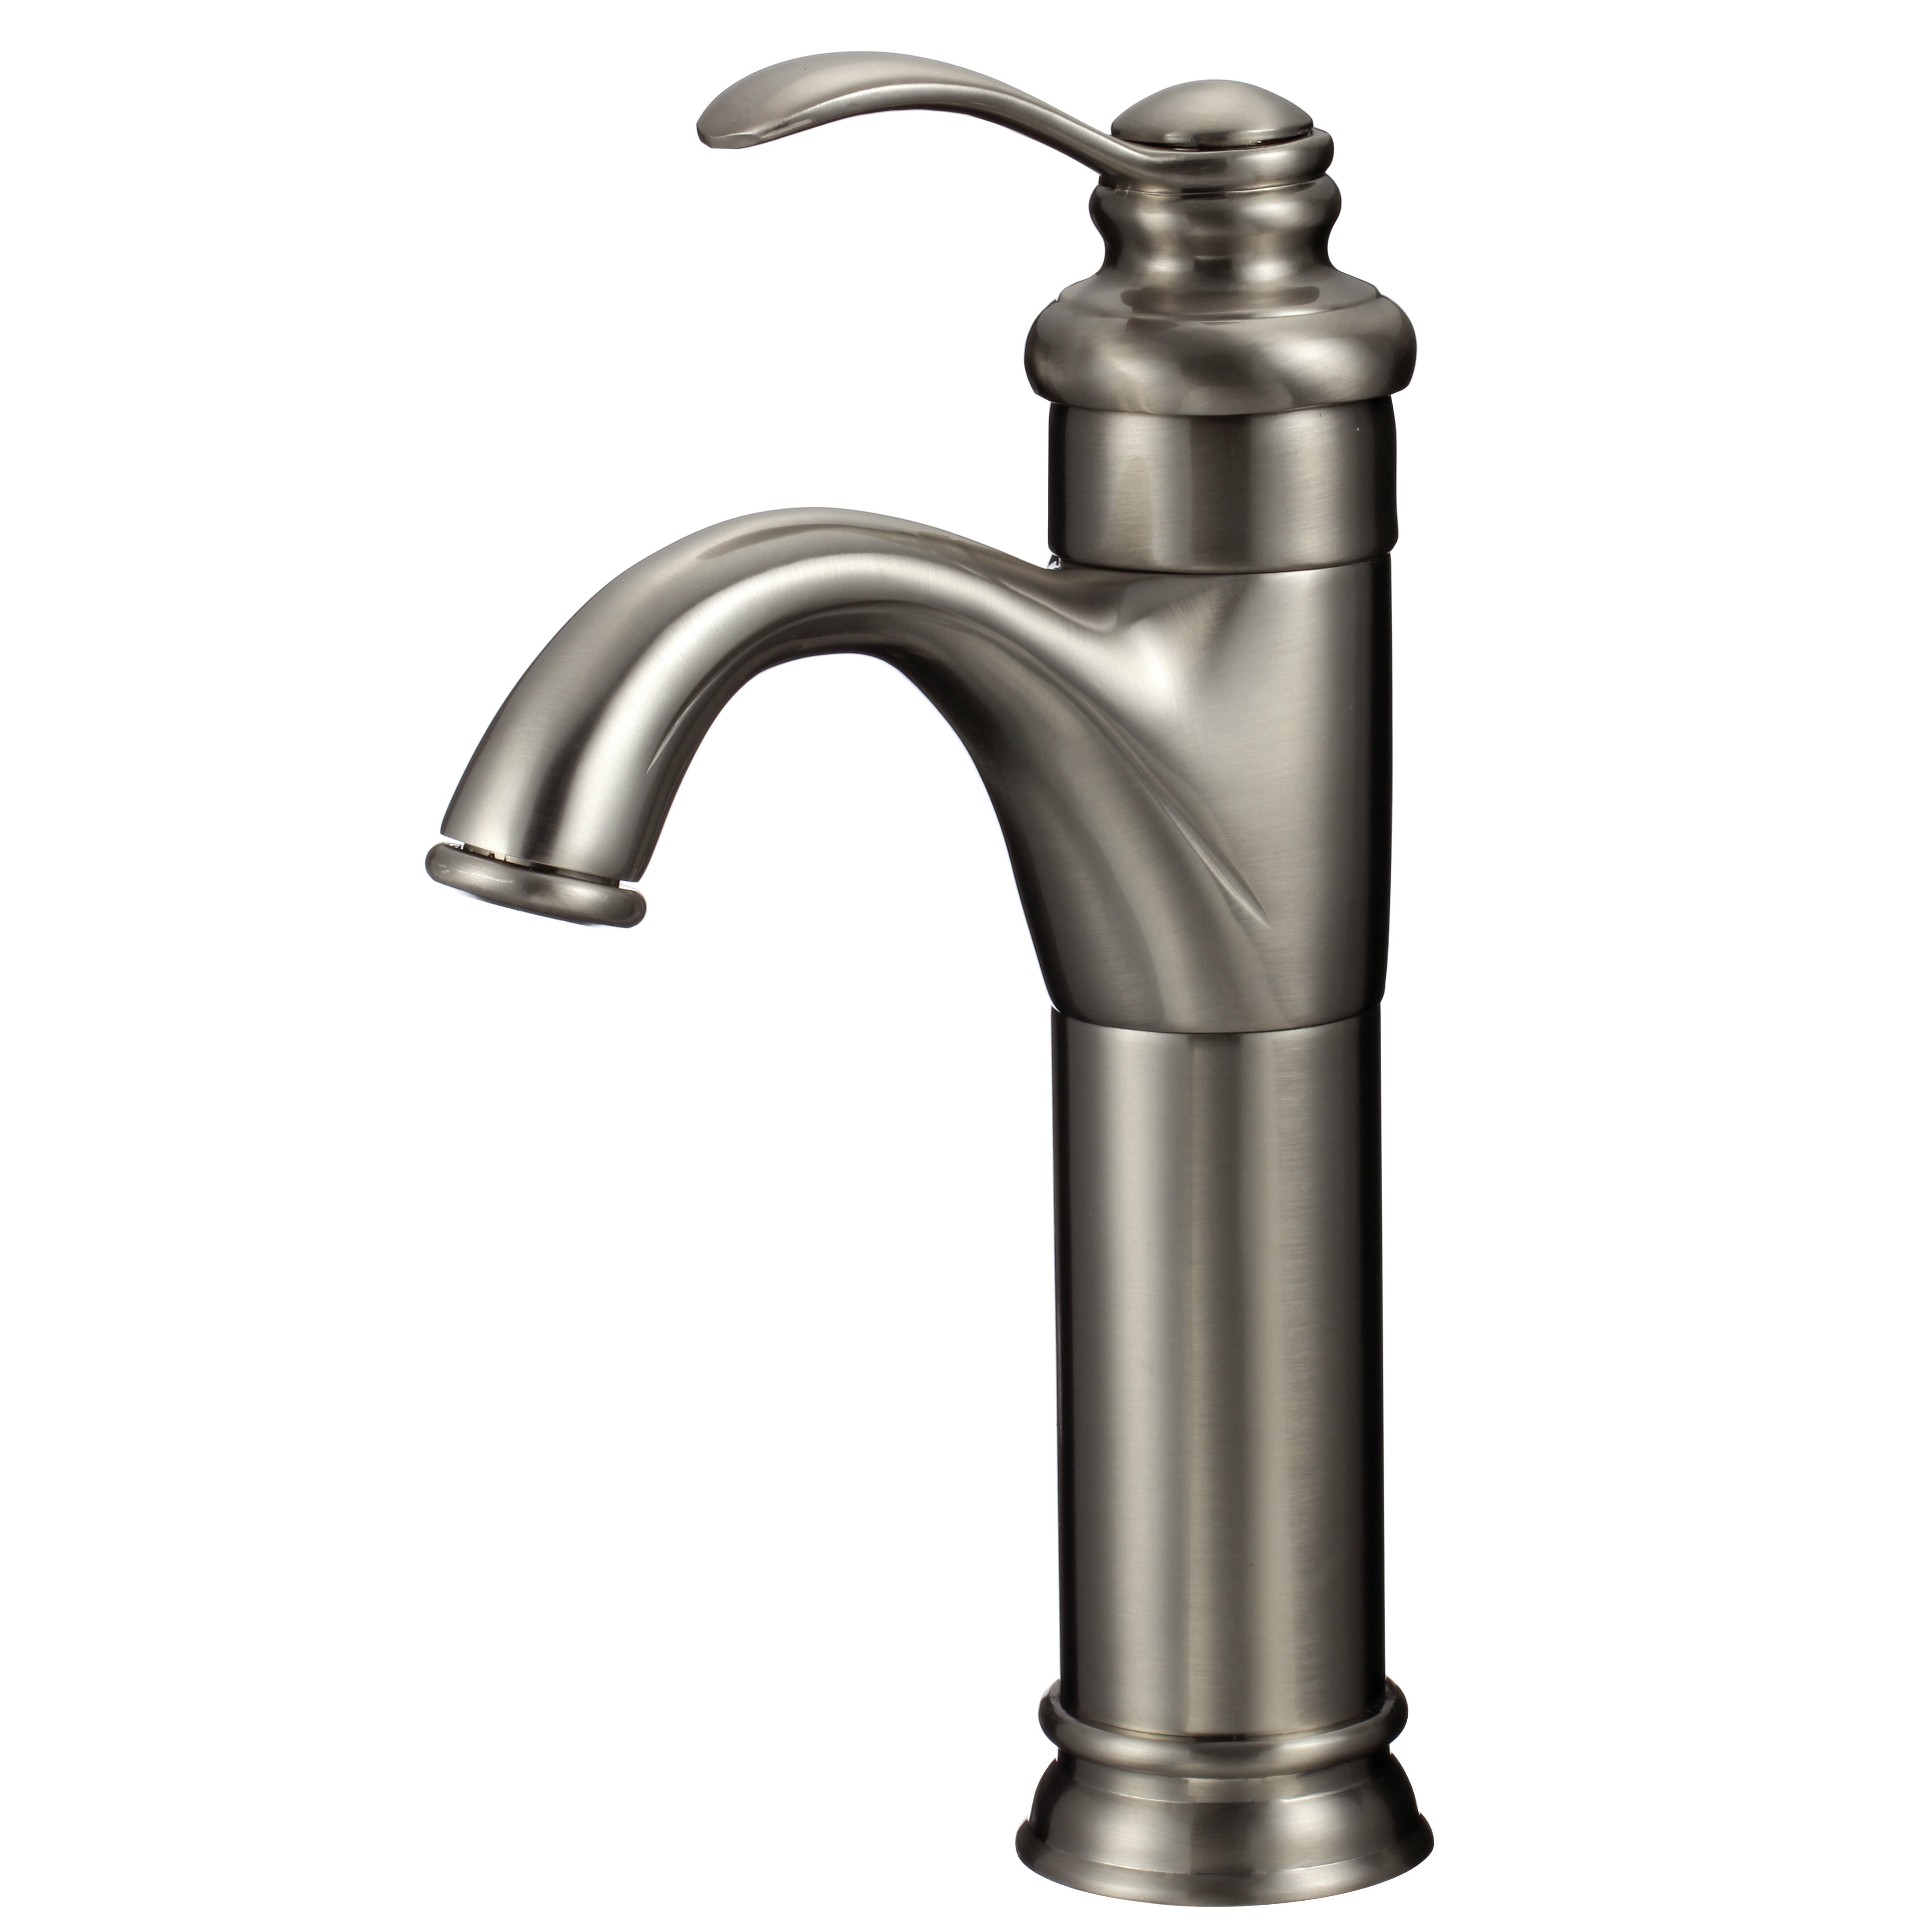 Single Lever Bathroom Faucets: Upscale Designs By EMA Single Handle Bathroom Sink Faucet